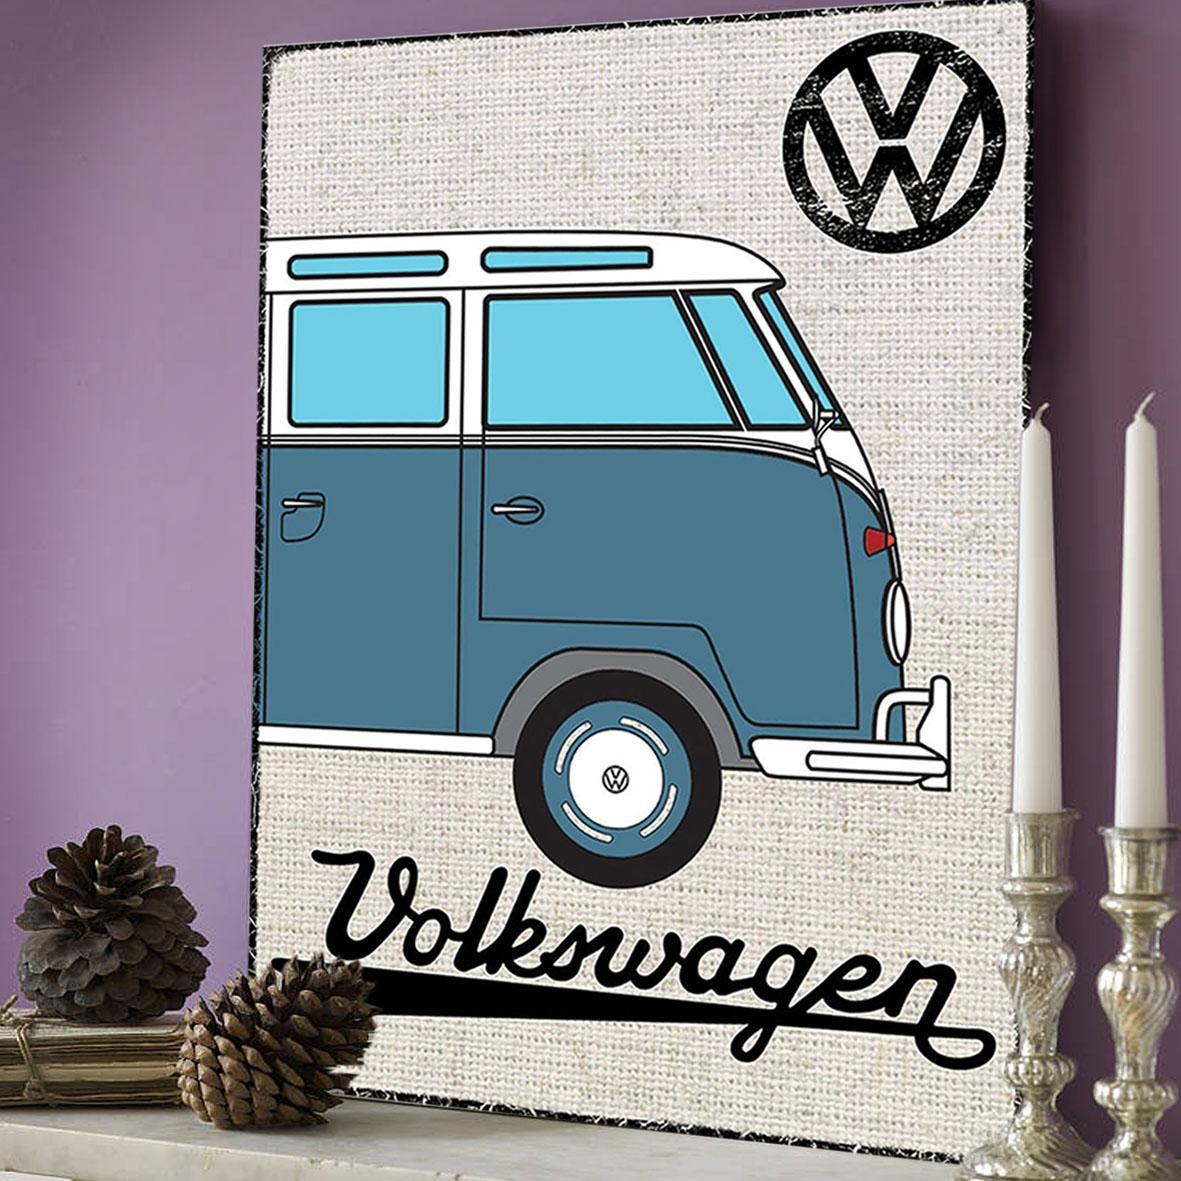 Official Vw Blue Campervan Metal Wall Art Plaque / Sign 41Cm X With Regard To Campervan Metal Wall Art (View 15 of 20)